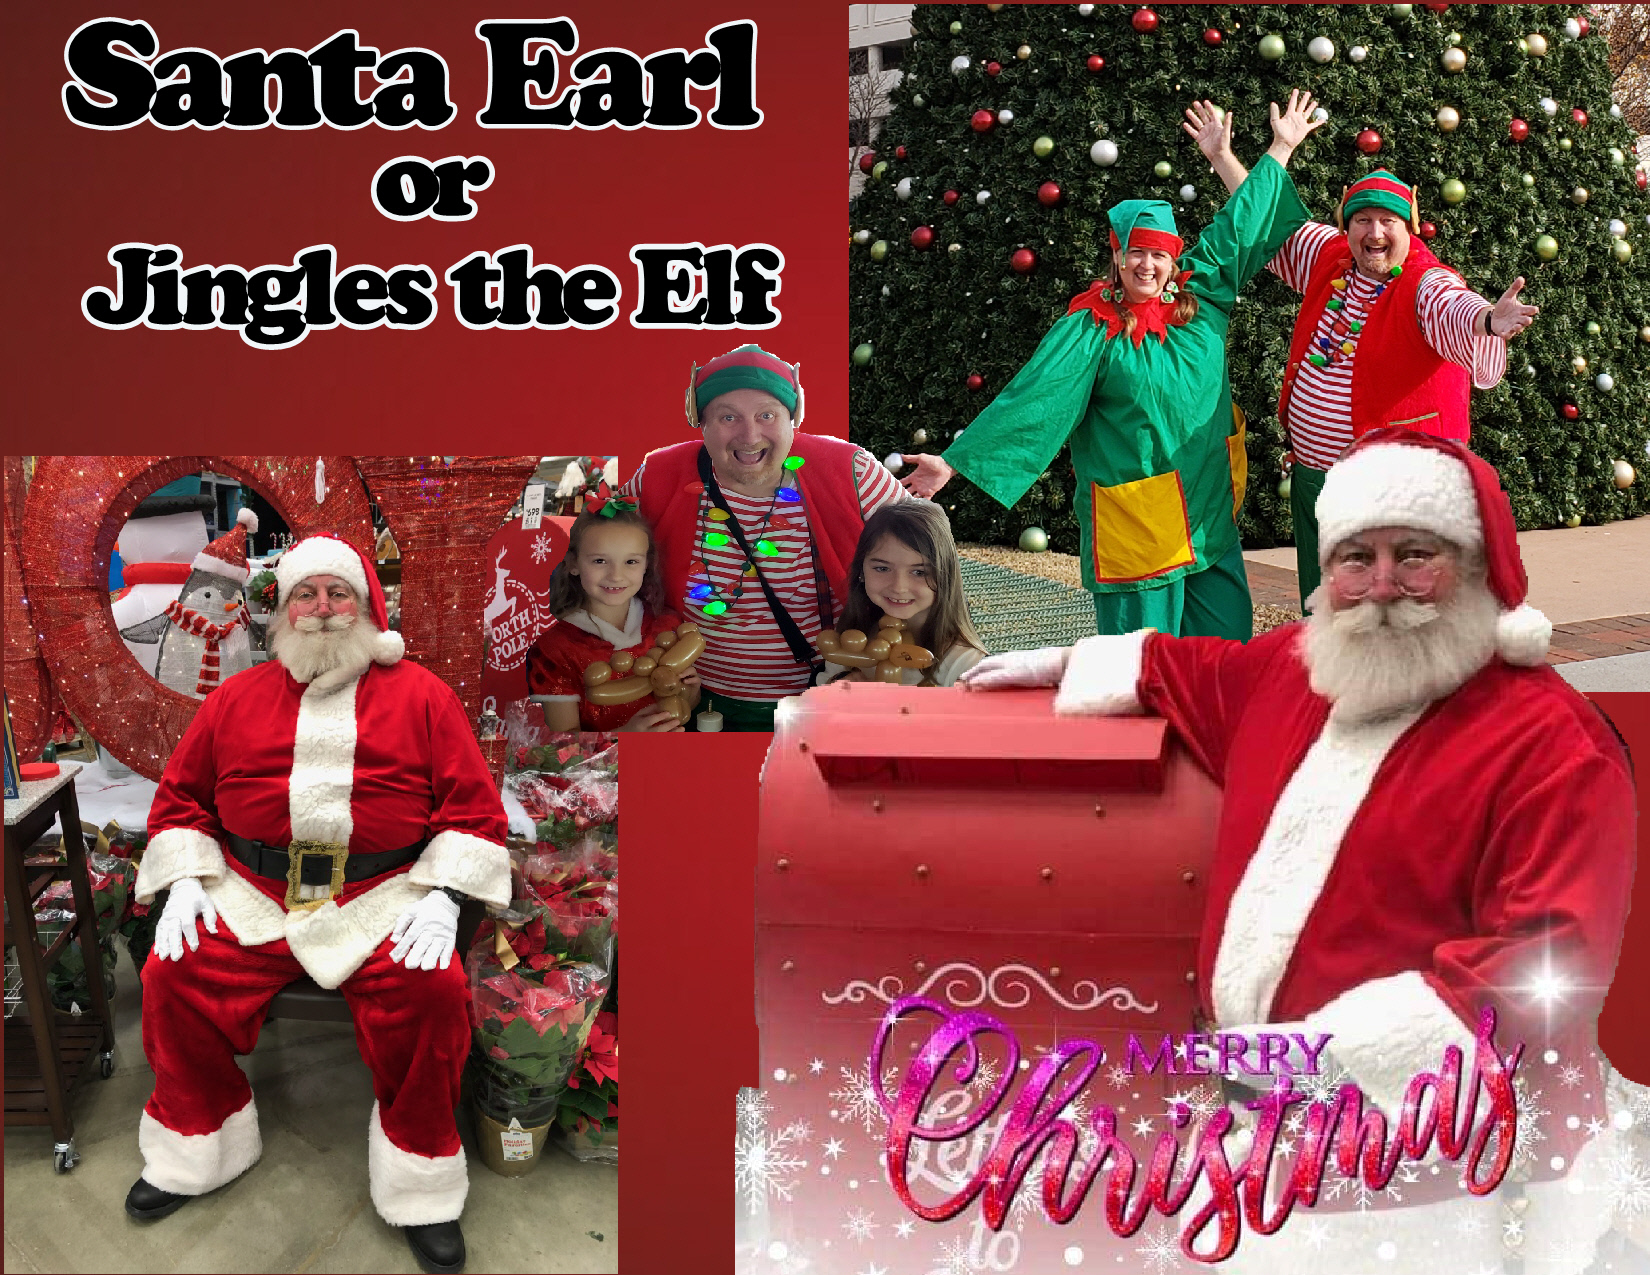 Santa Earl or Elves